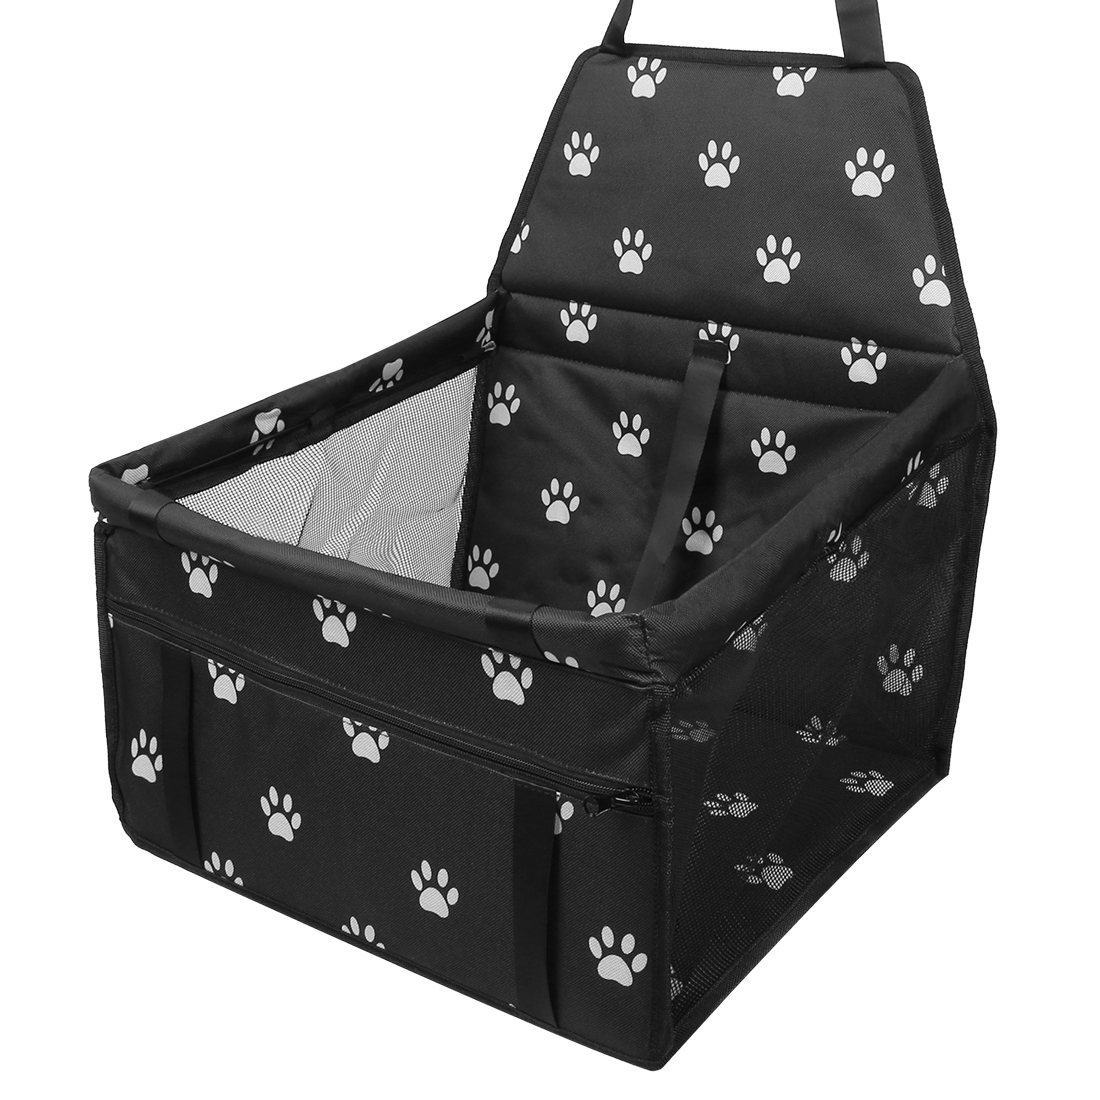 Car Auto Dog Front Seat Cover Dark Black Pet Seat Cover Protector